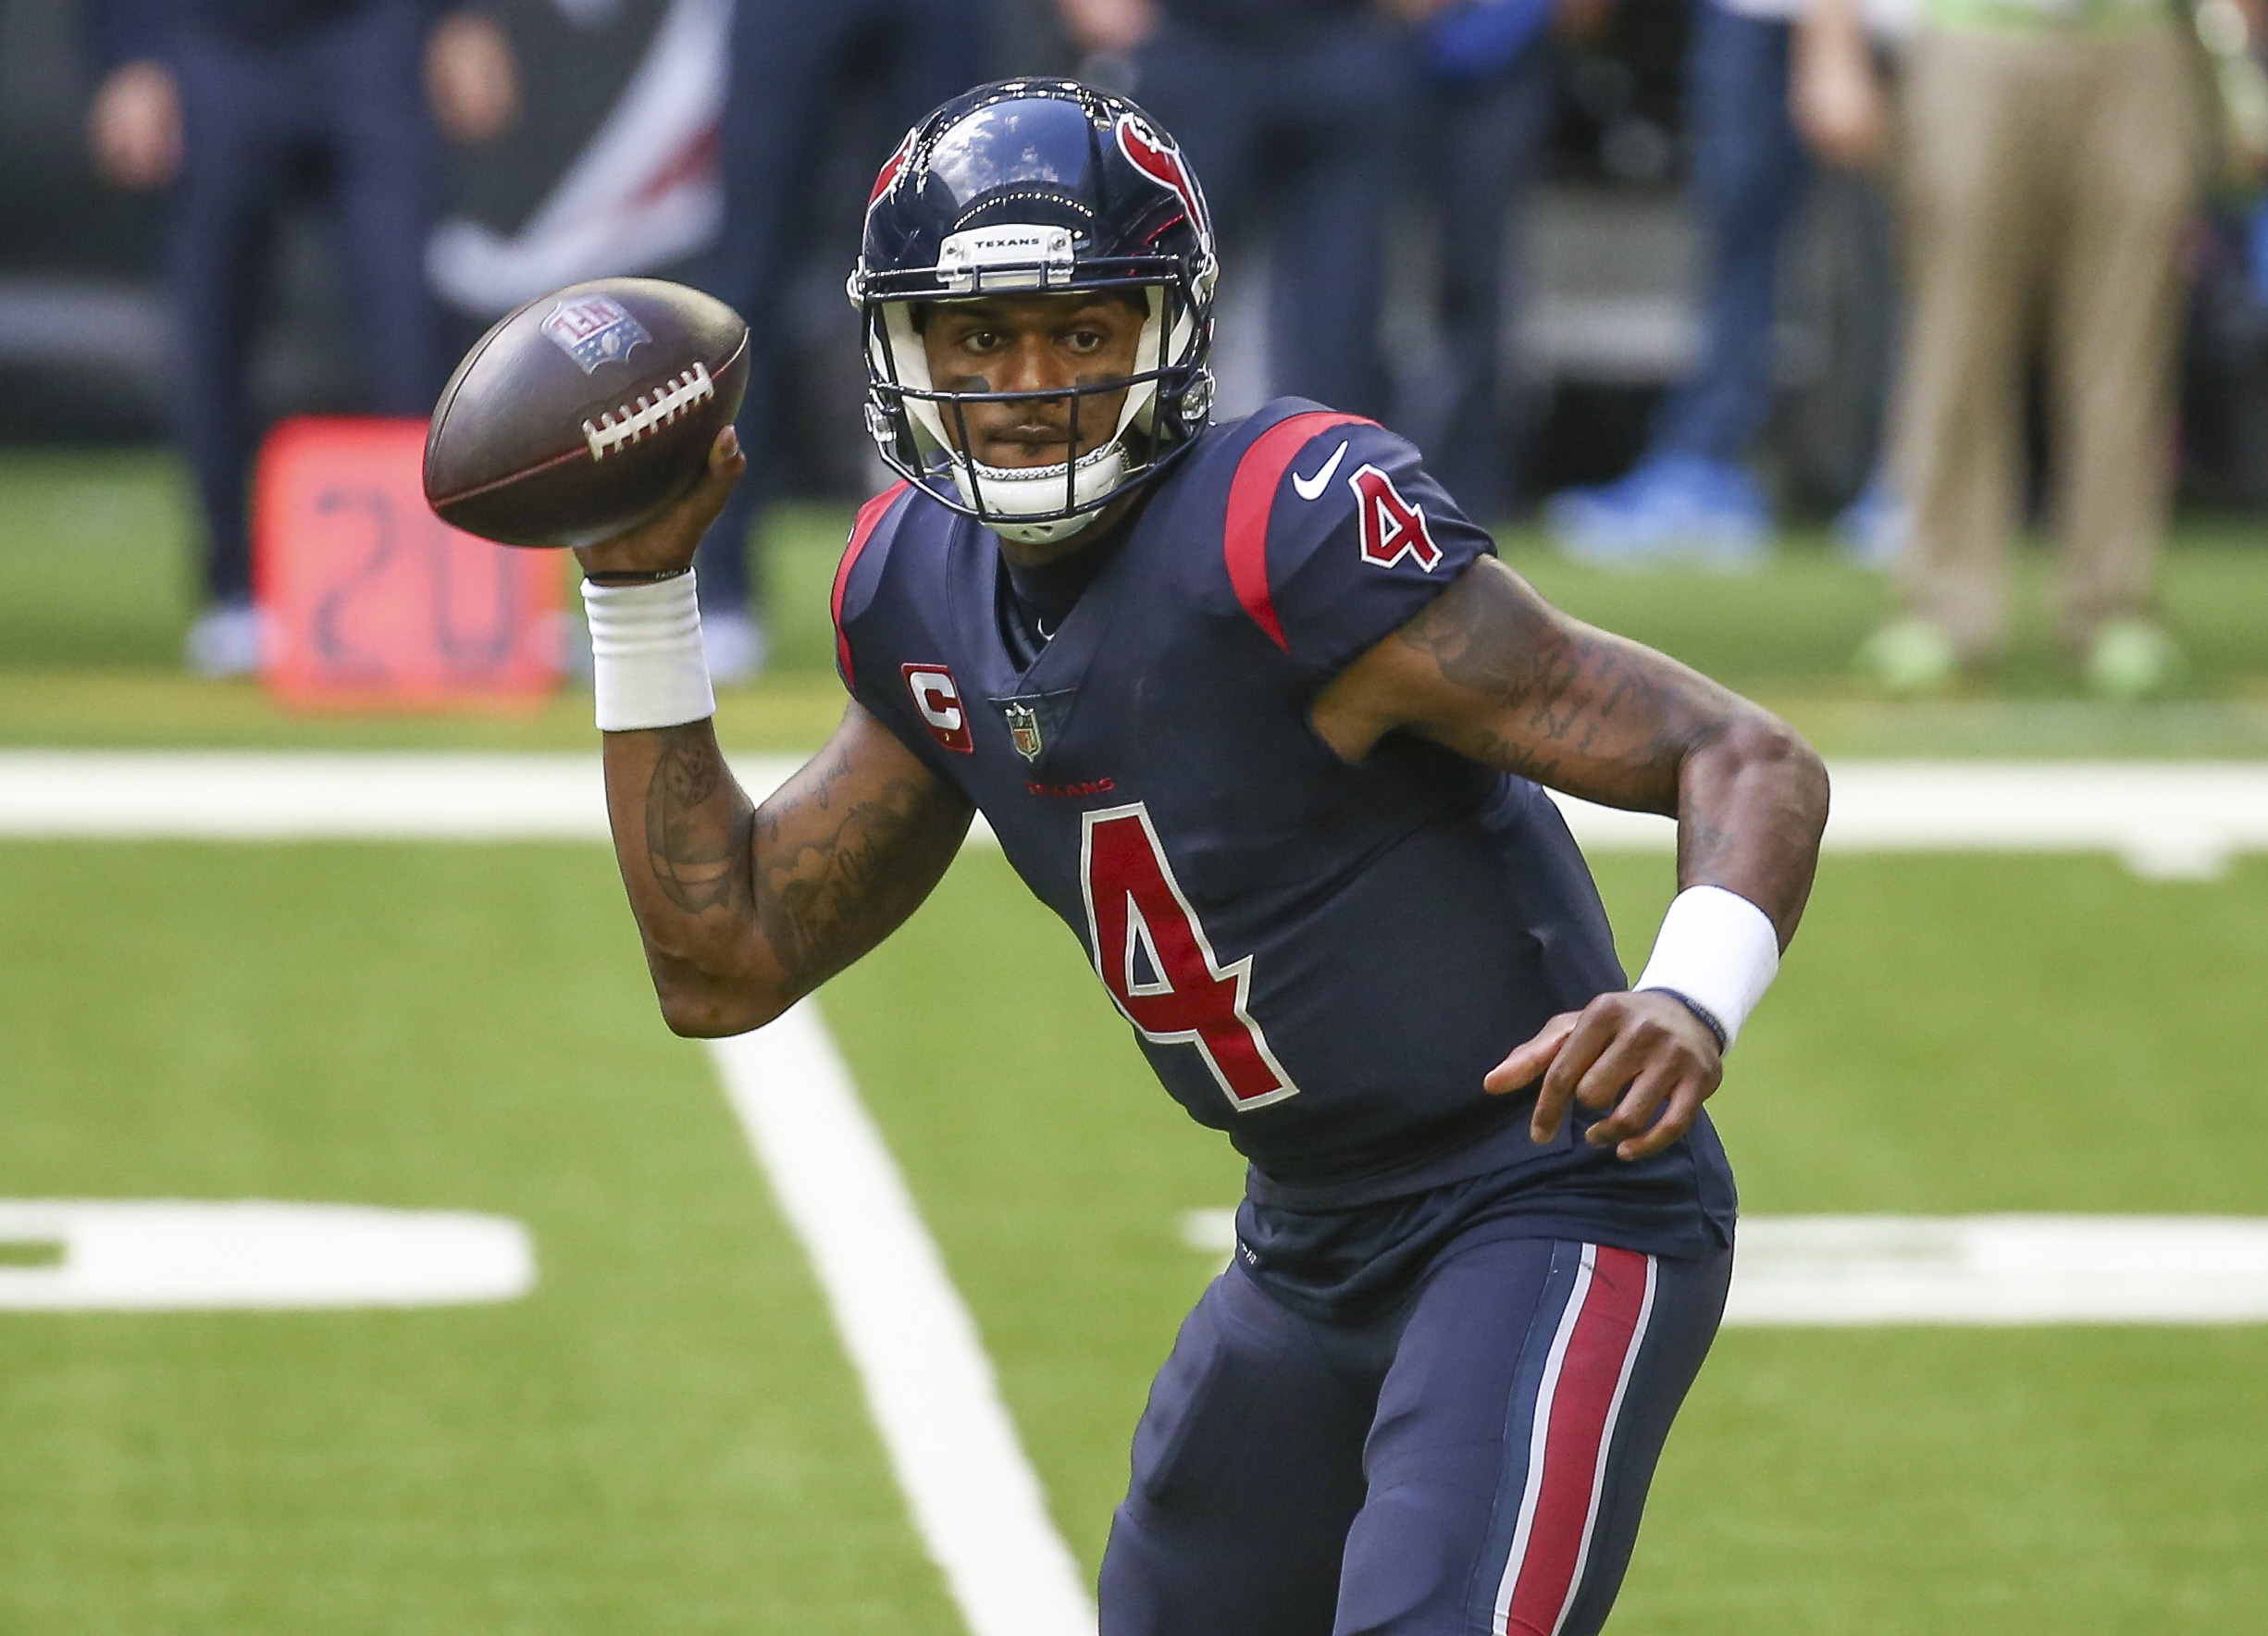 Texans' Deshaun Watson Could be Placed on Paid Leave Following Sexual Assault Allegations